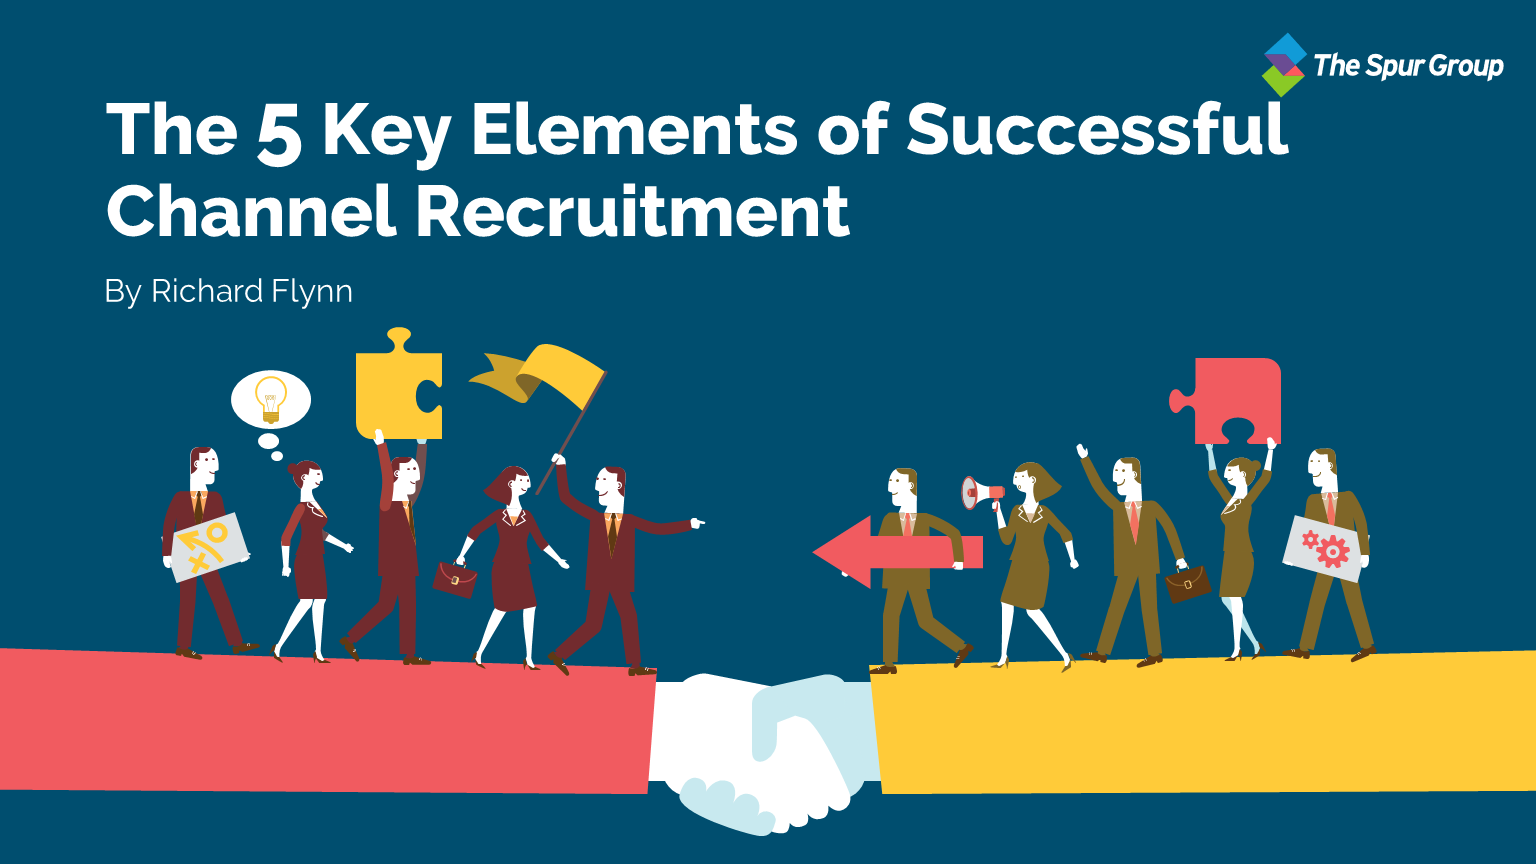 The 5 key elements of successful channel recruitment